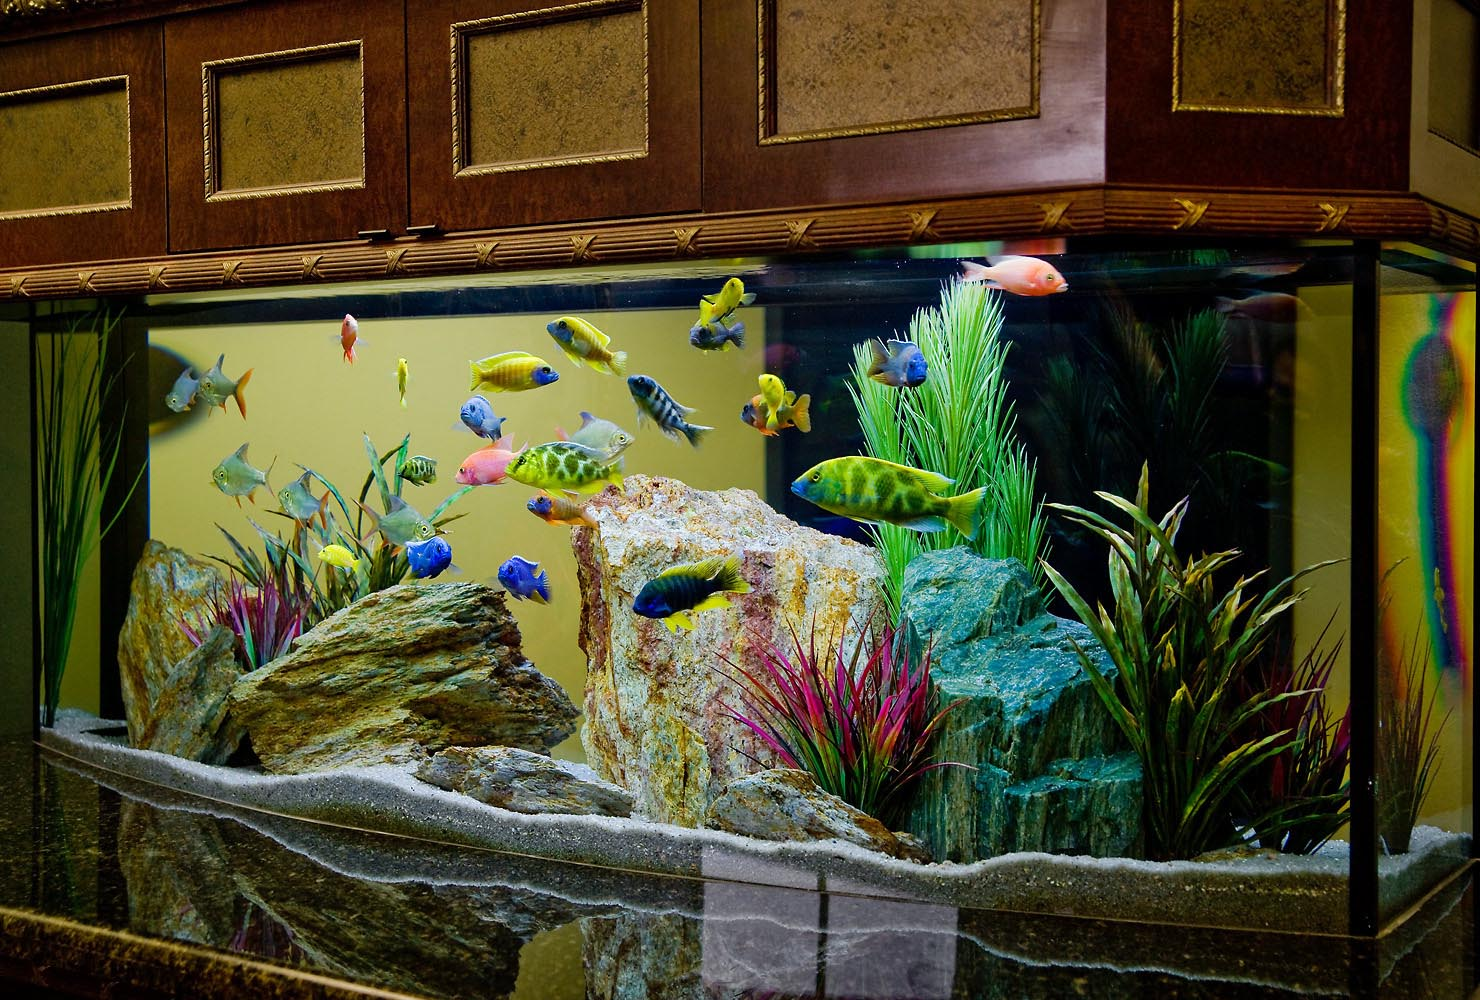 Live freshwater aquarium fish aquarium design ideas for Aquarium fish online